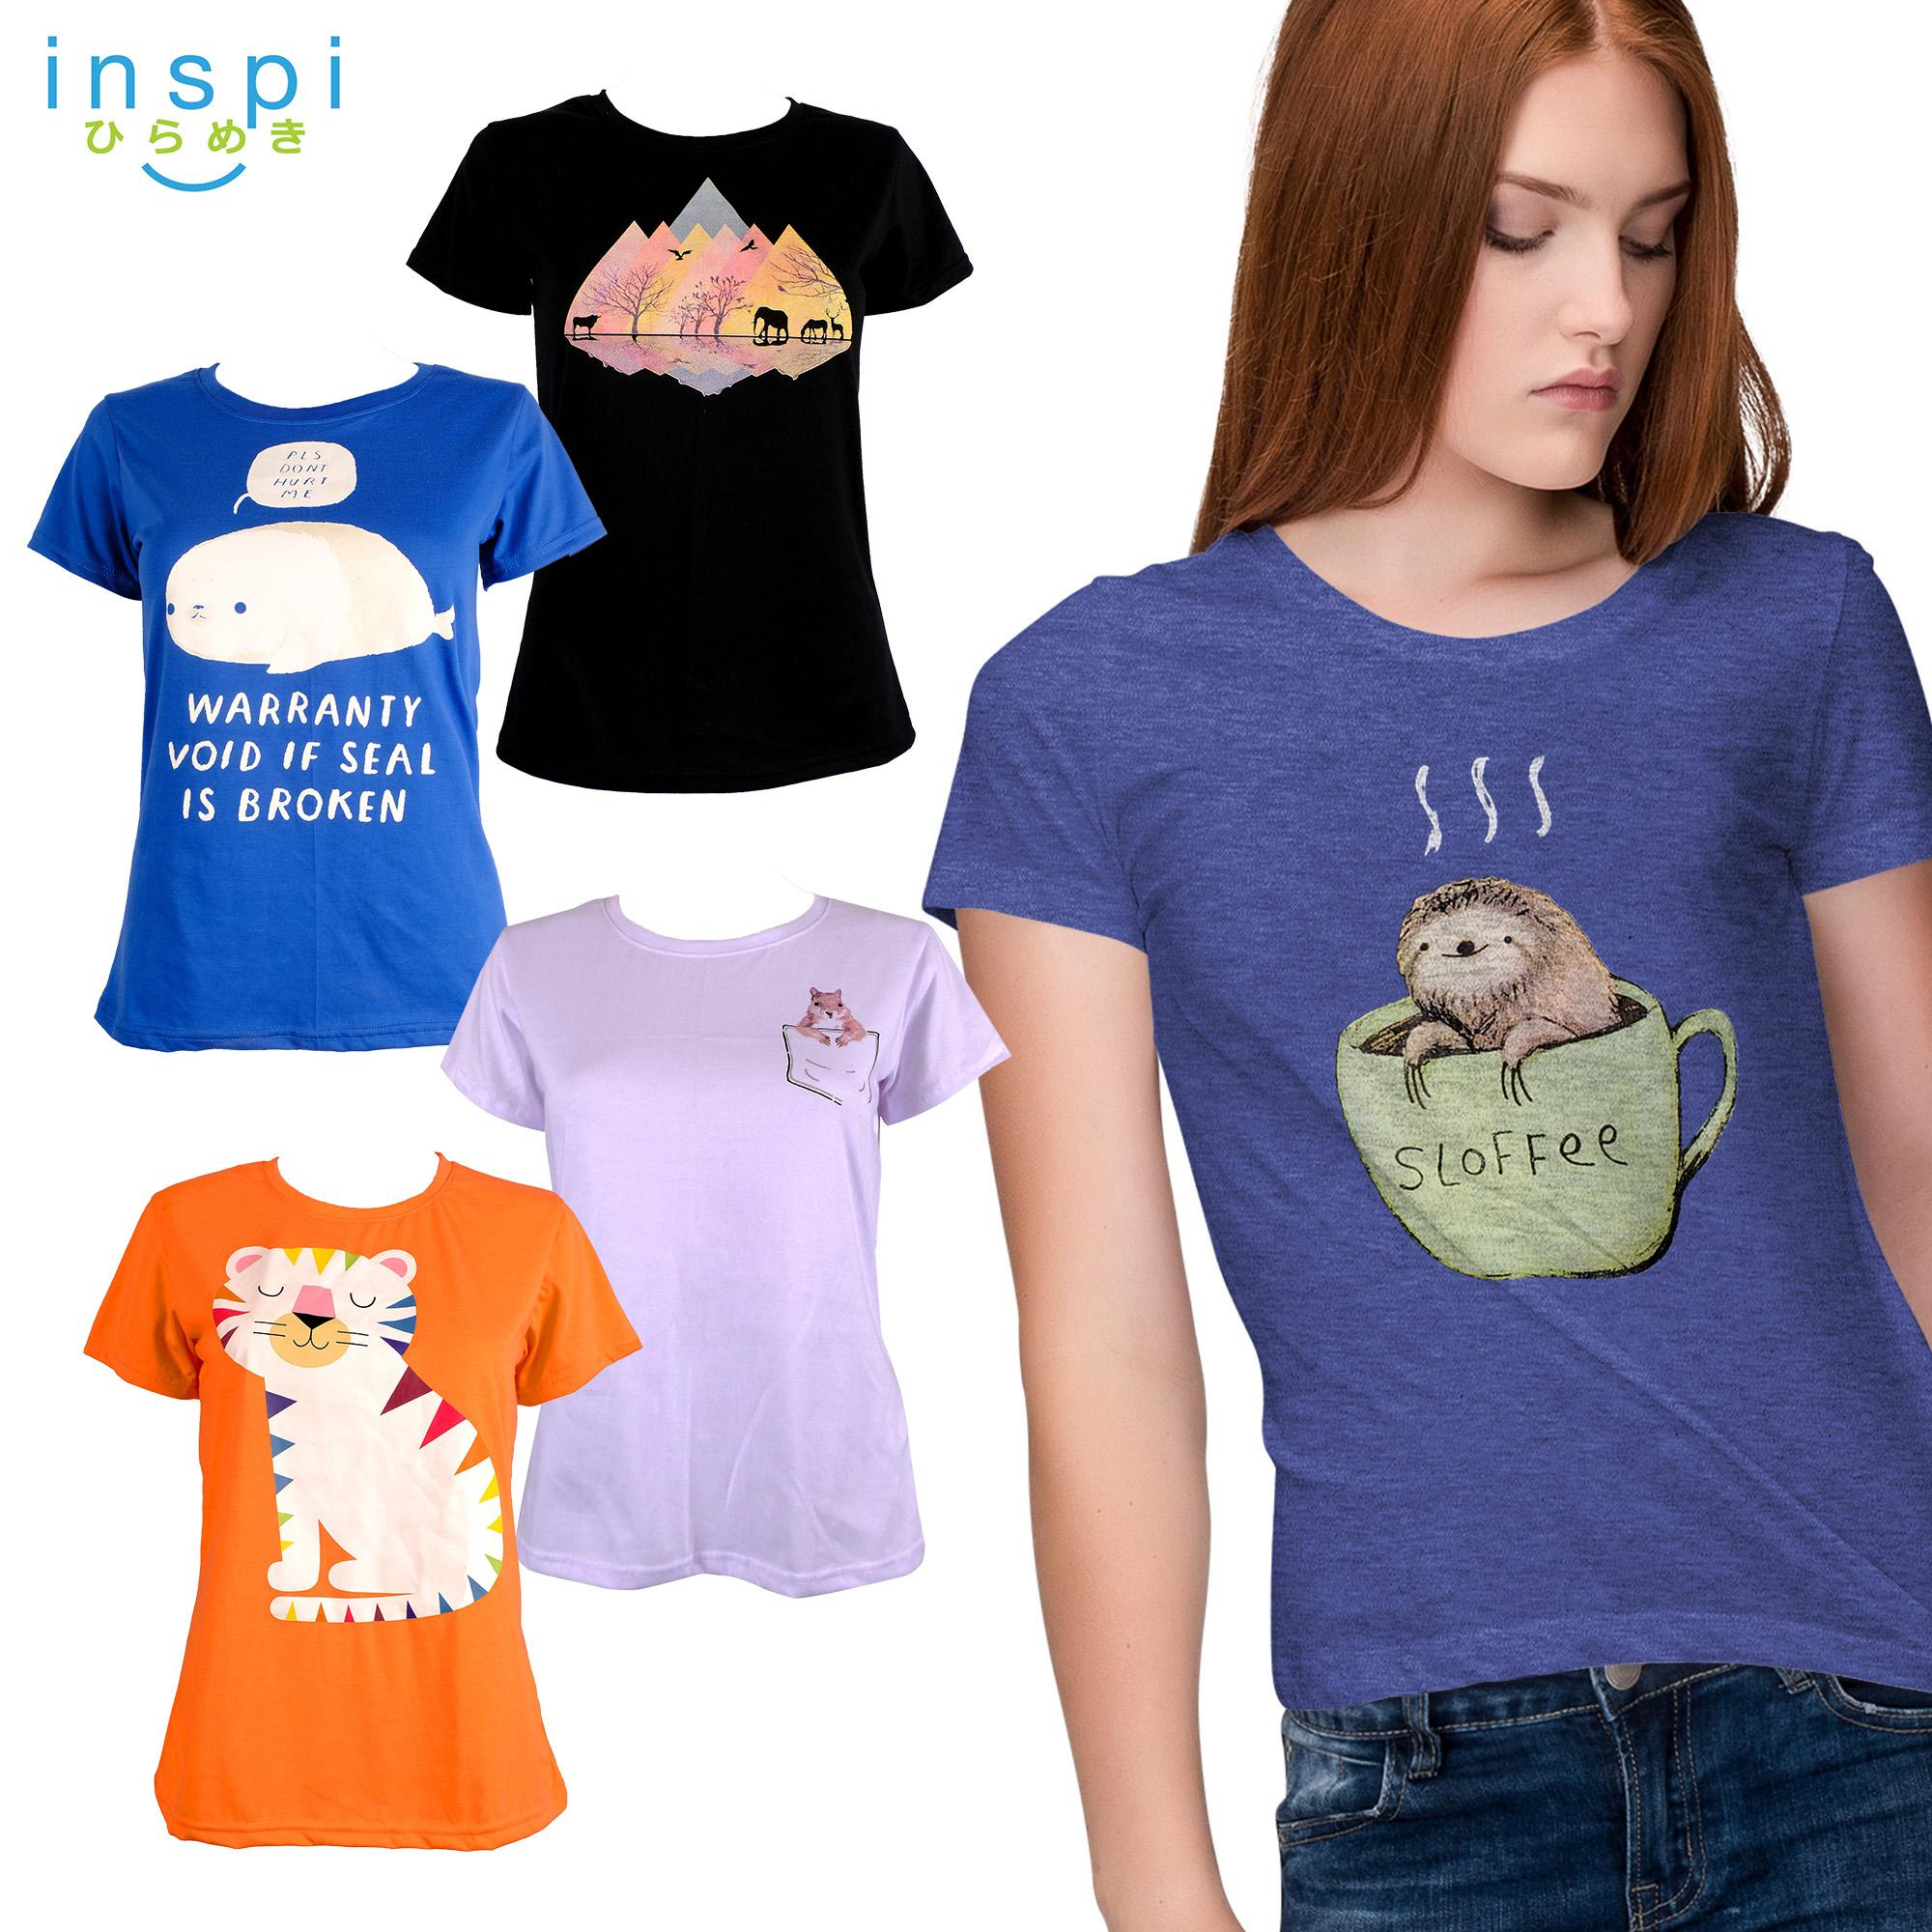 741491e624f INSPI Tees Ladies Pet Collection tshirt printed graphic tee Ladies t shirt  shirts women tshirts for